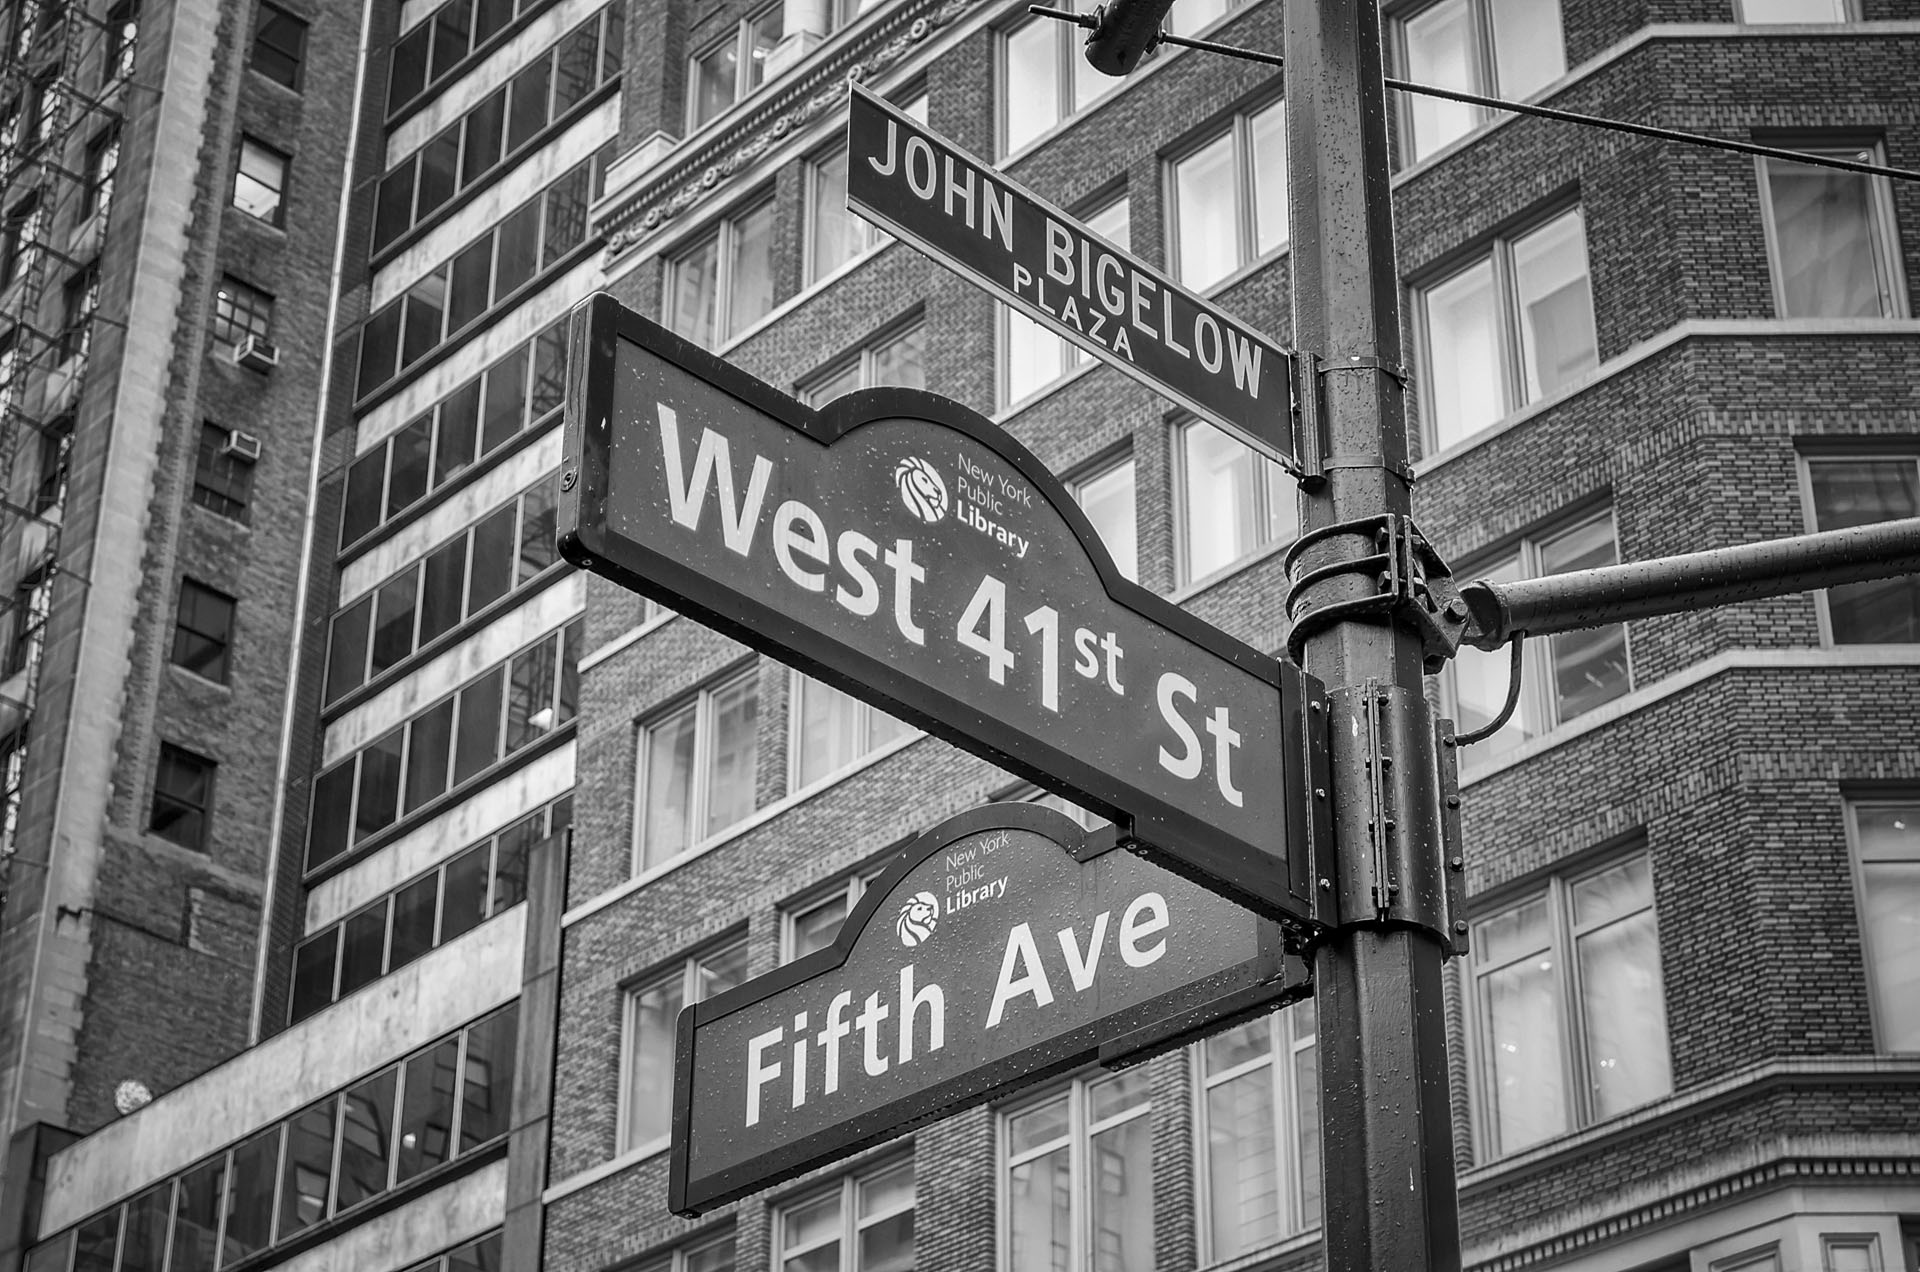 5th Avenue sign, New York City, USA